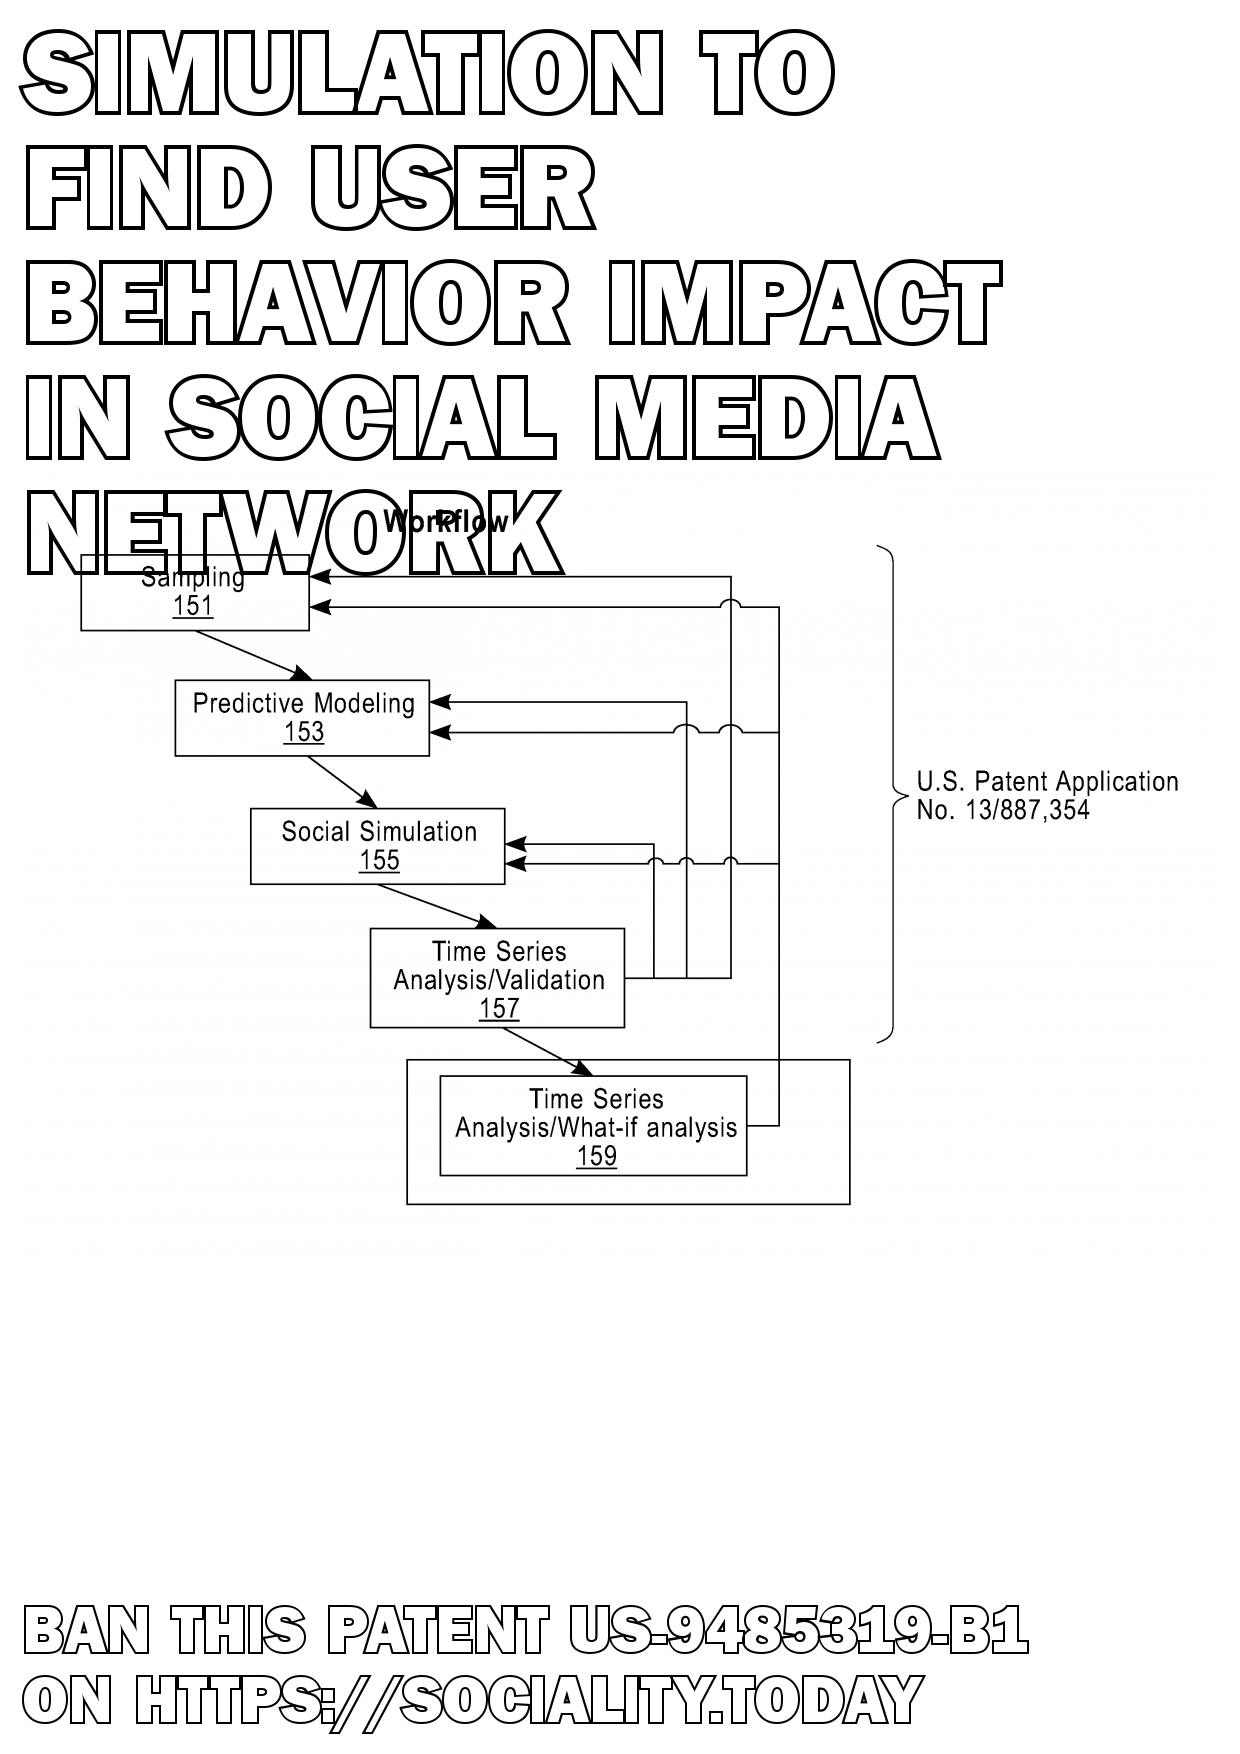 Simulation to find user behavior impact in social media network  - US-9485319-B1